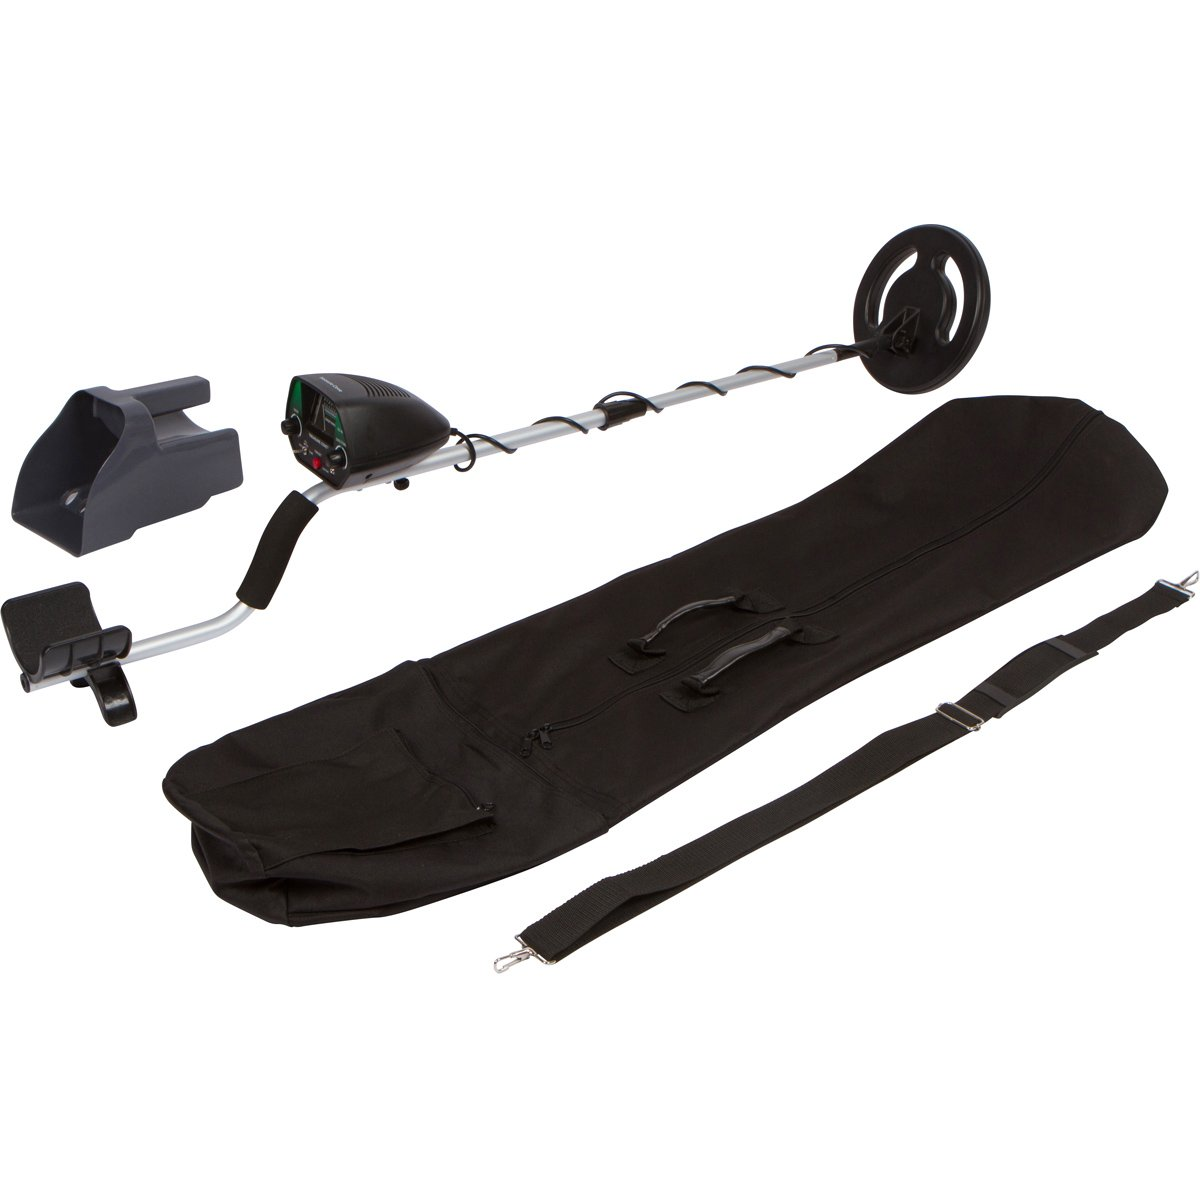 Treasure Cove TC-1023 Easy-To-Use Gold and Silver Metal Detector Kit with Bonus Sand Sifter Scoop